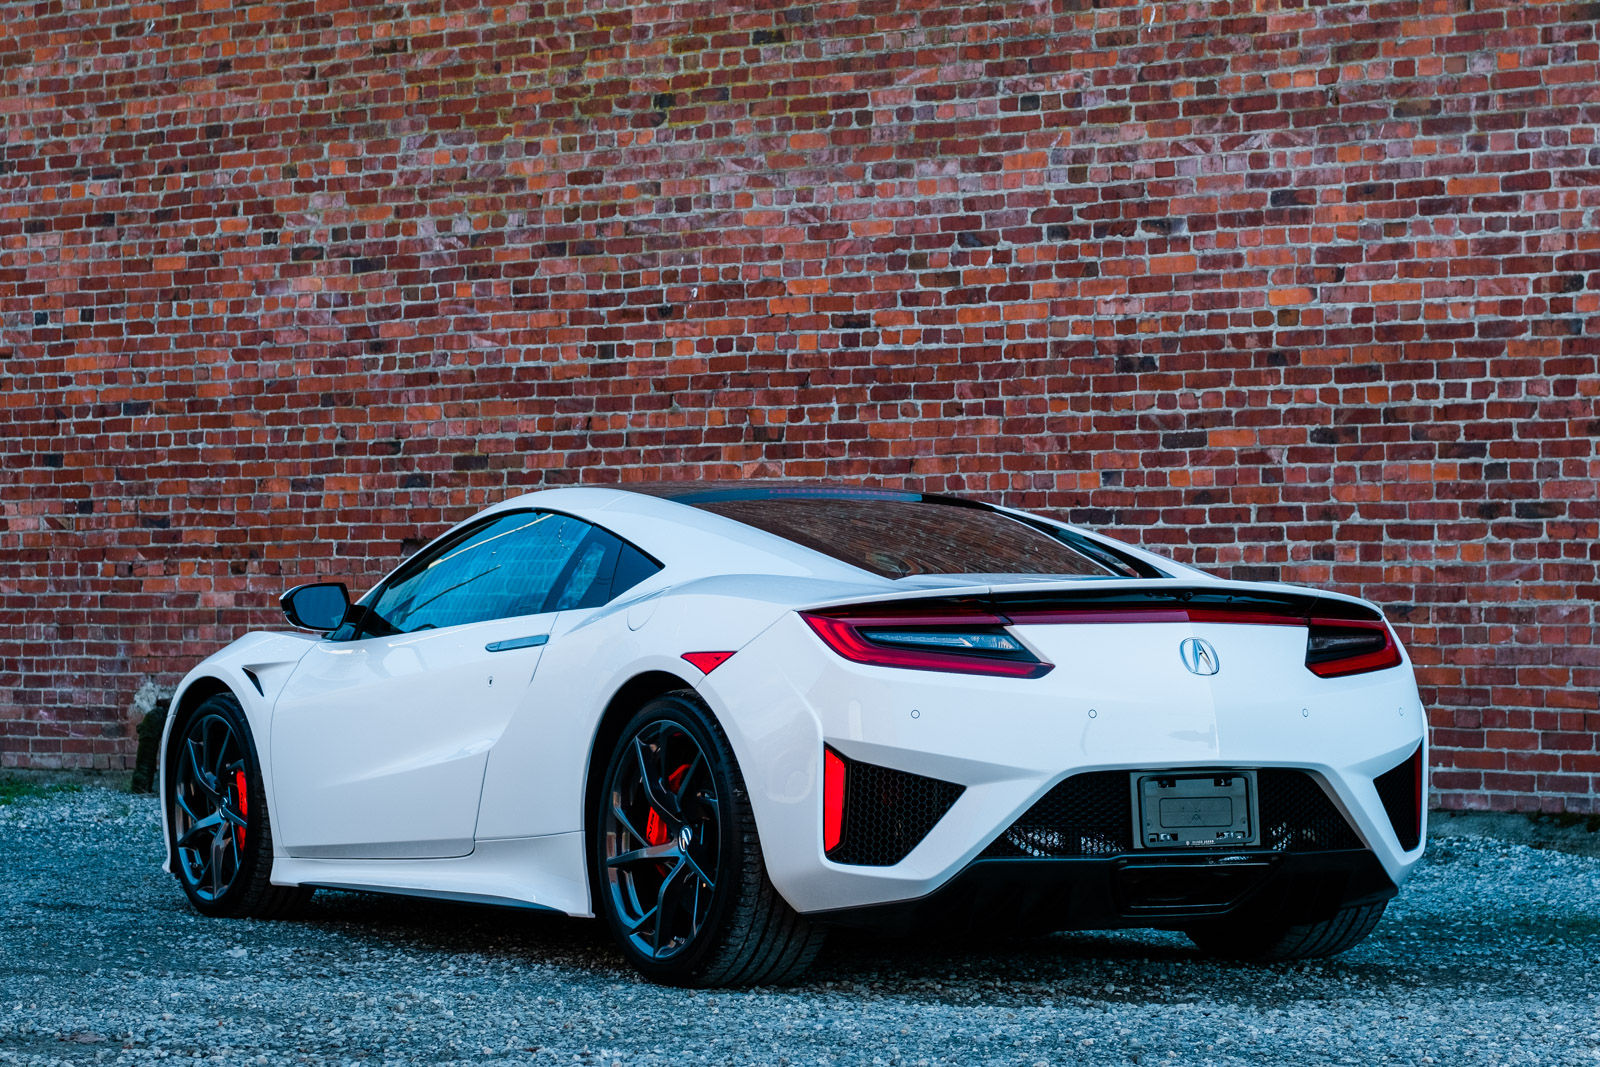 2017 Acura NSX in Victoria BC @ Silver Arrow Cars Ltd